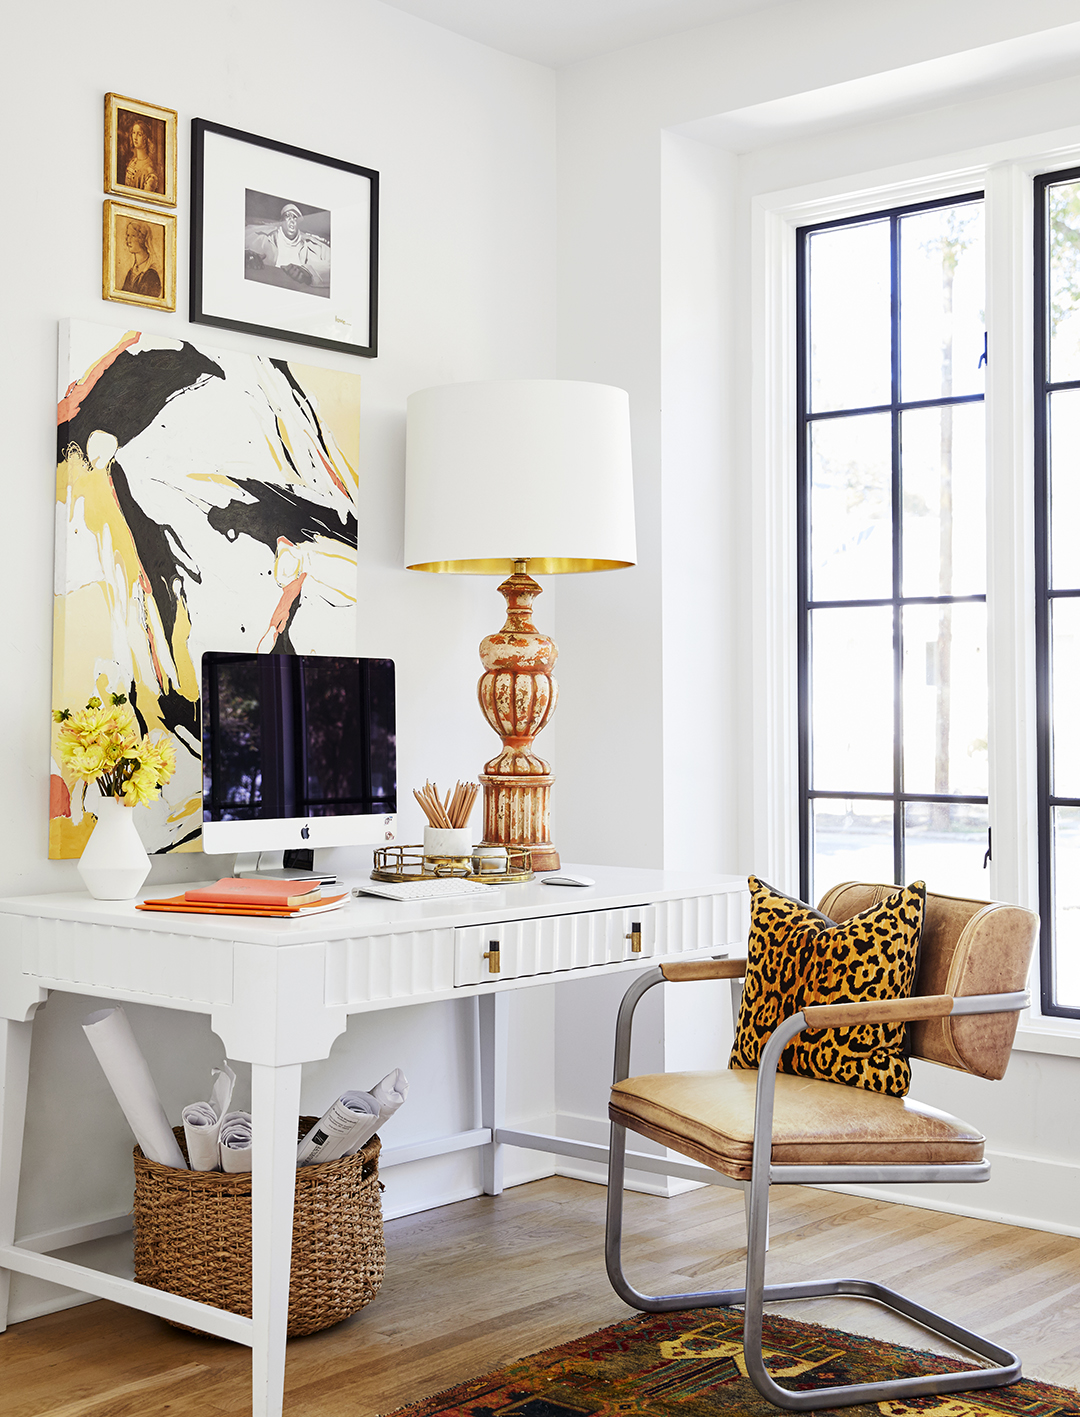 office-desk-with-modern-art-on-wall-c79a41d6.jpg